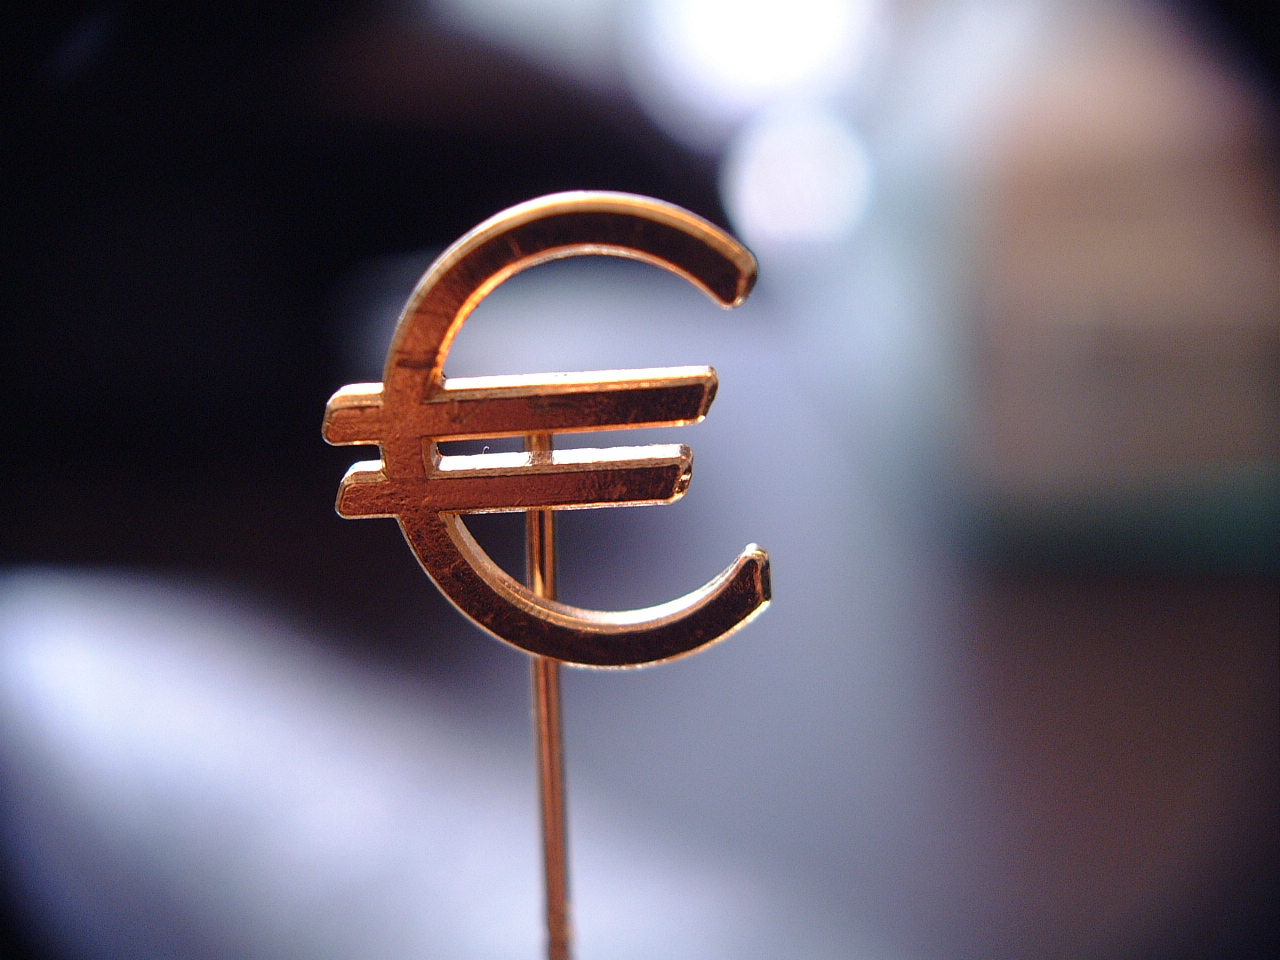 maartent euro money pin copper sign objects signs typo tyopgraphy cash